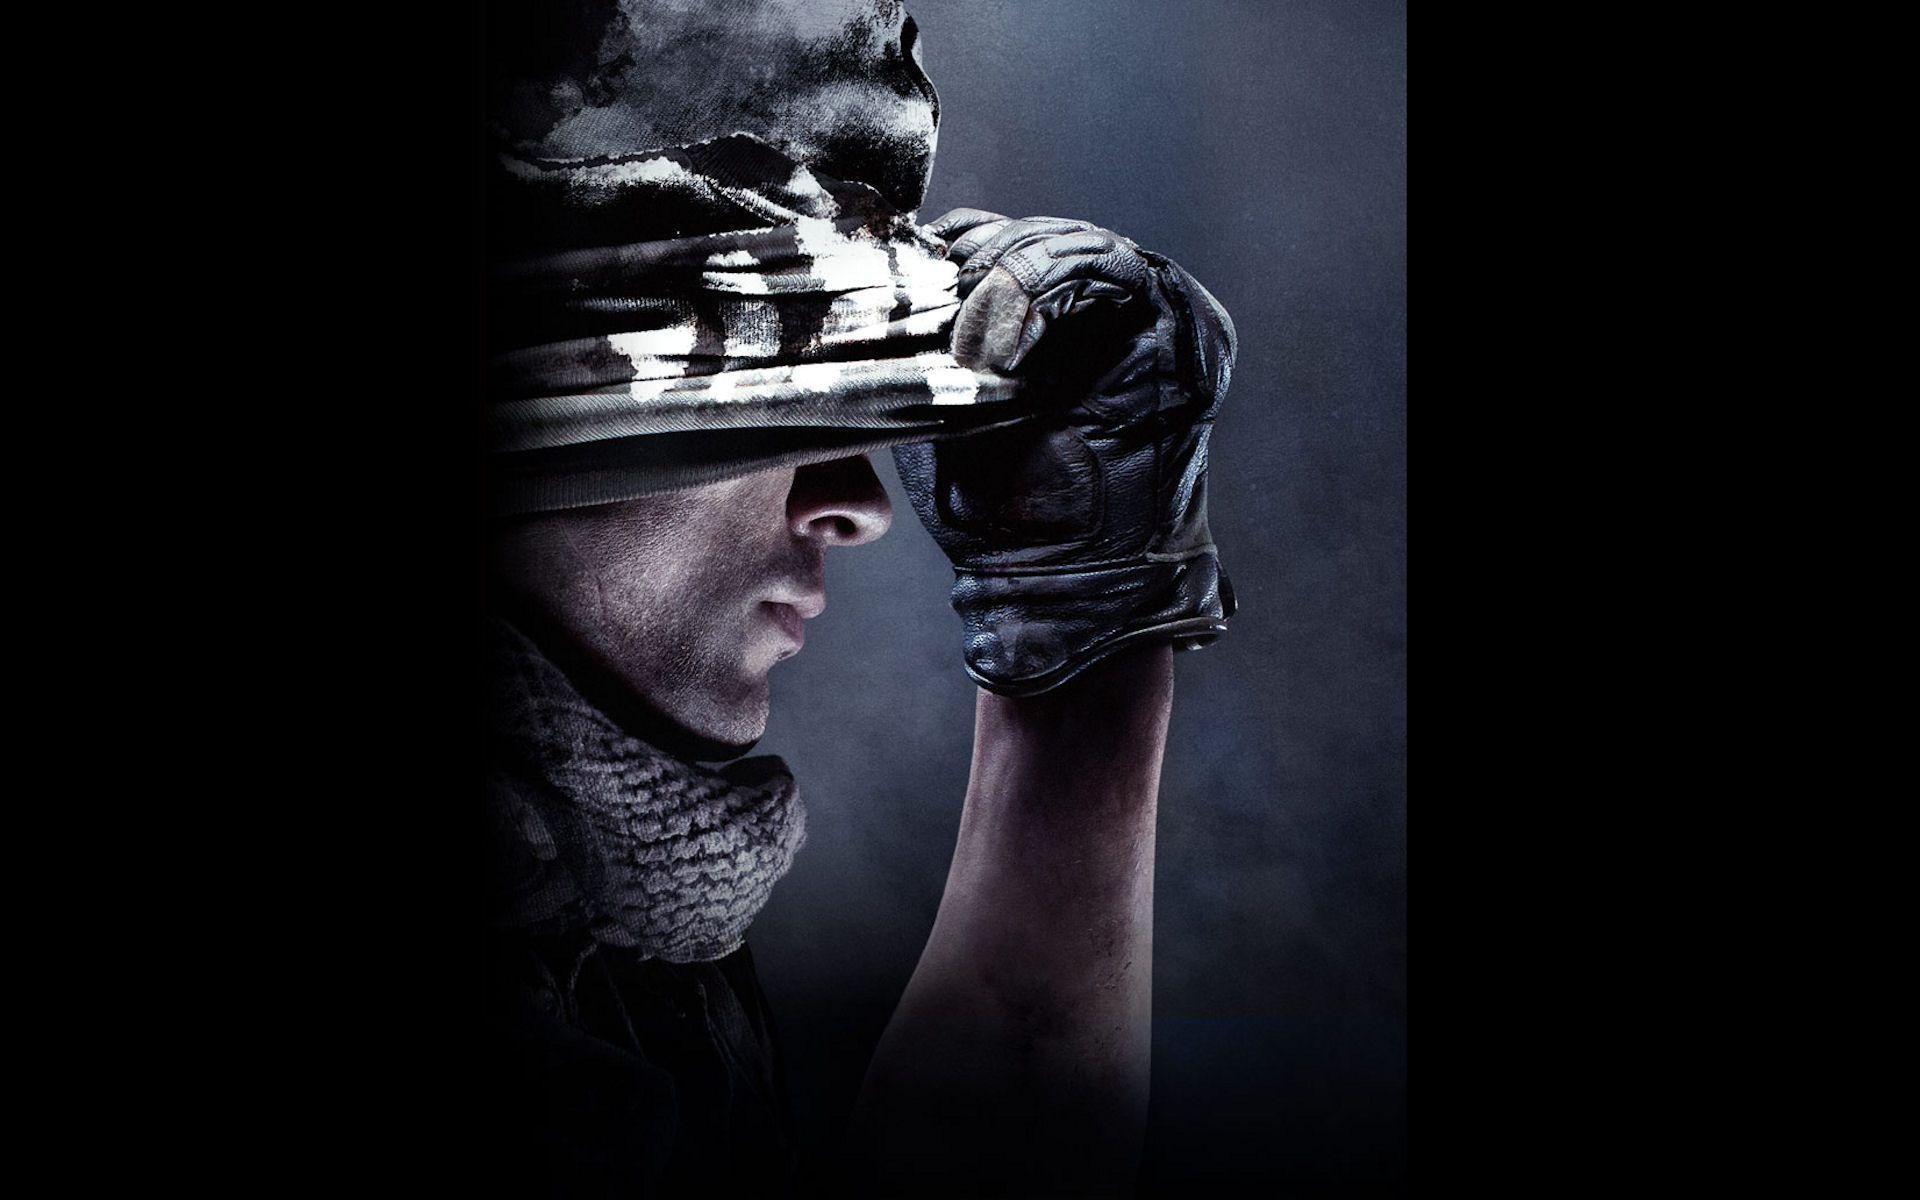 Call Of Duty Ghost 2015 Wallpapers - Wallpaper Cave